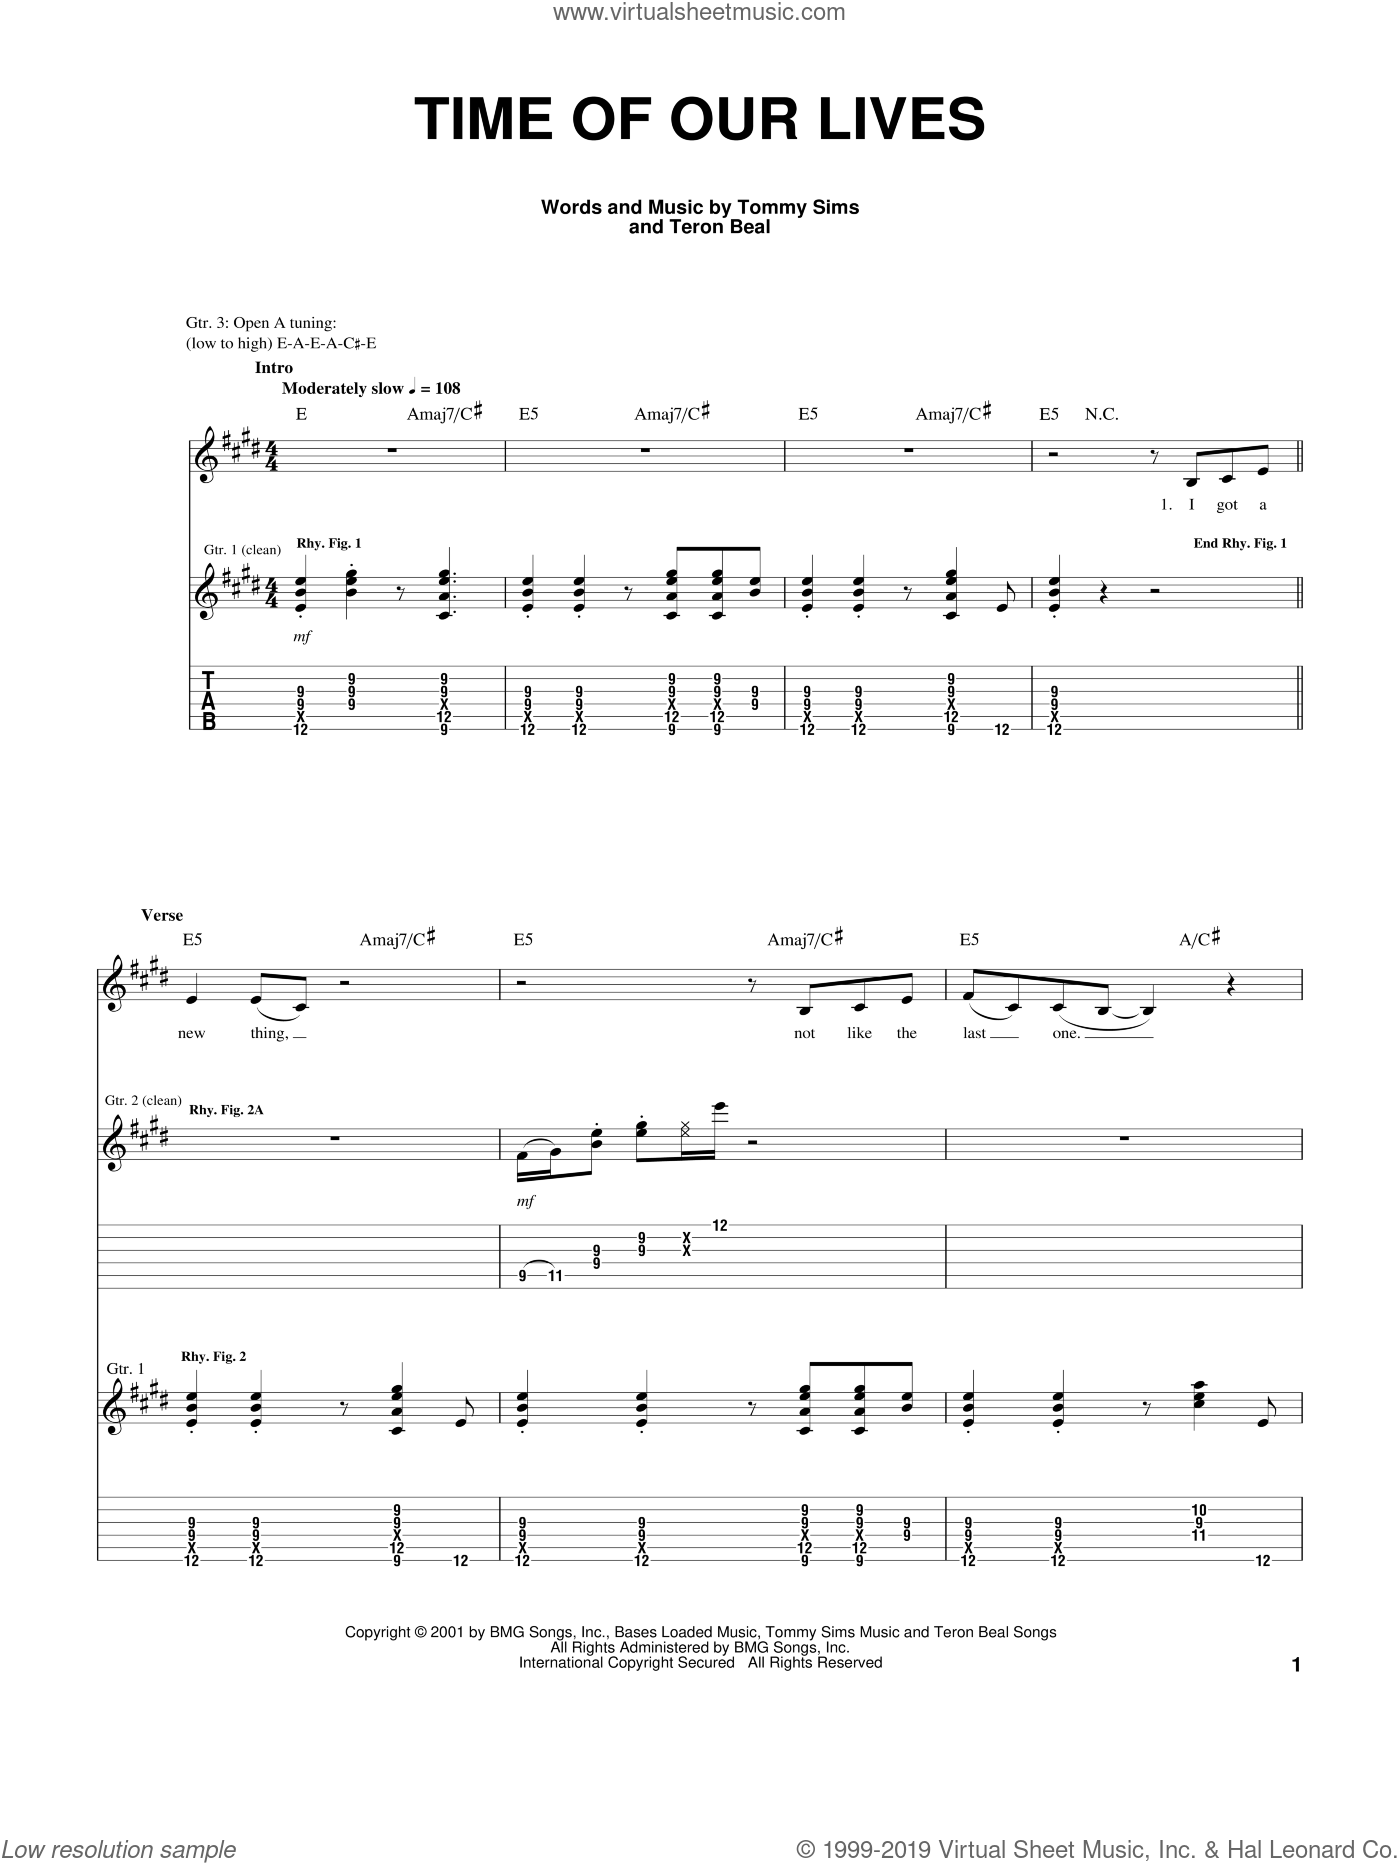 Time Of Our Lives sheet music for guitar (tablature) by Teron Beal and Tommy Sims, intermediate skill level